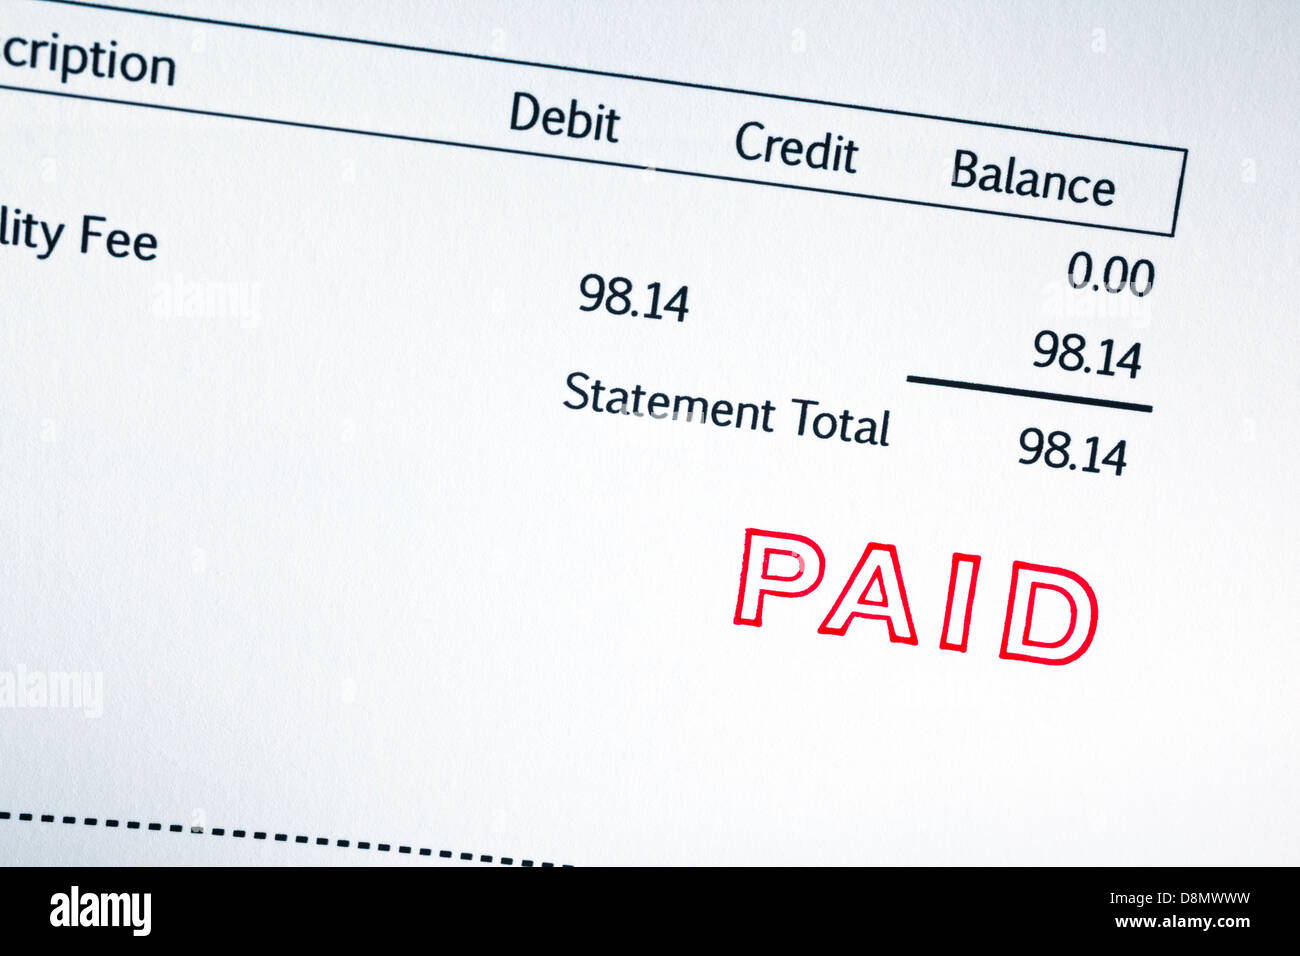 Invoice with Paid Stamp - close-up of invoice with Paid stamp, figures are imaginary. - Stock Image